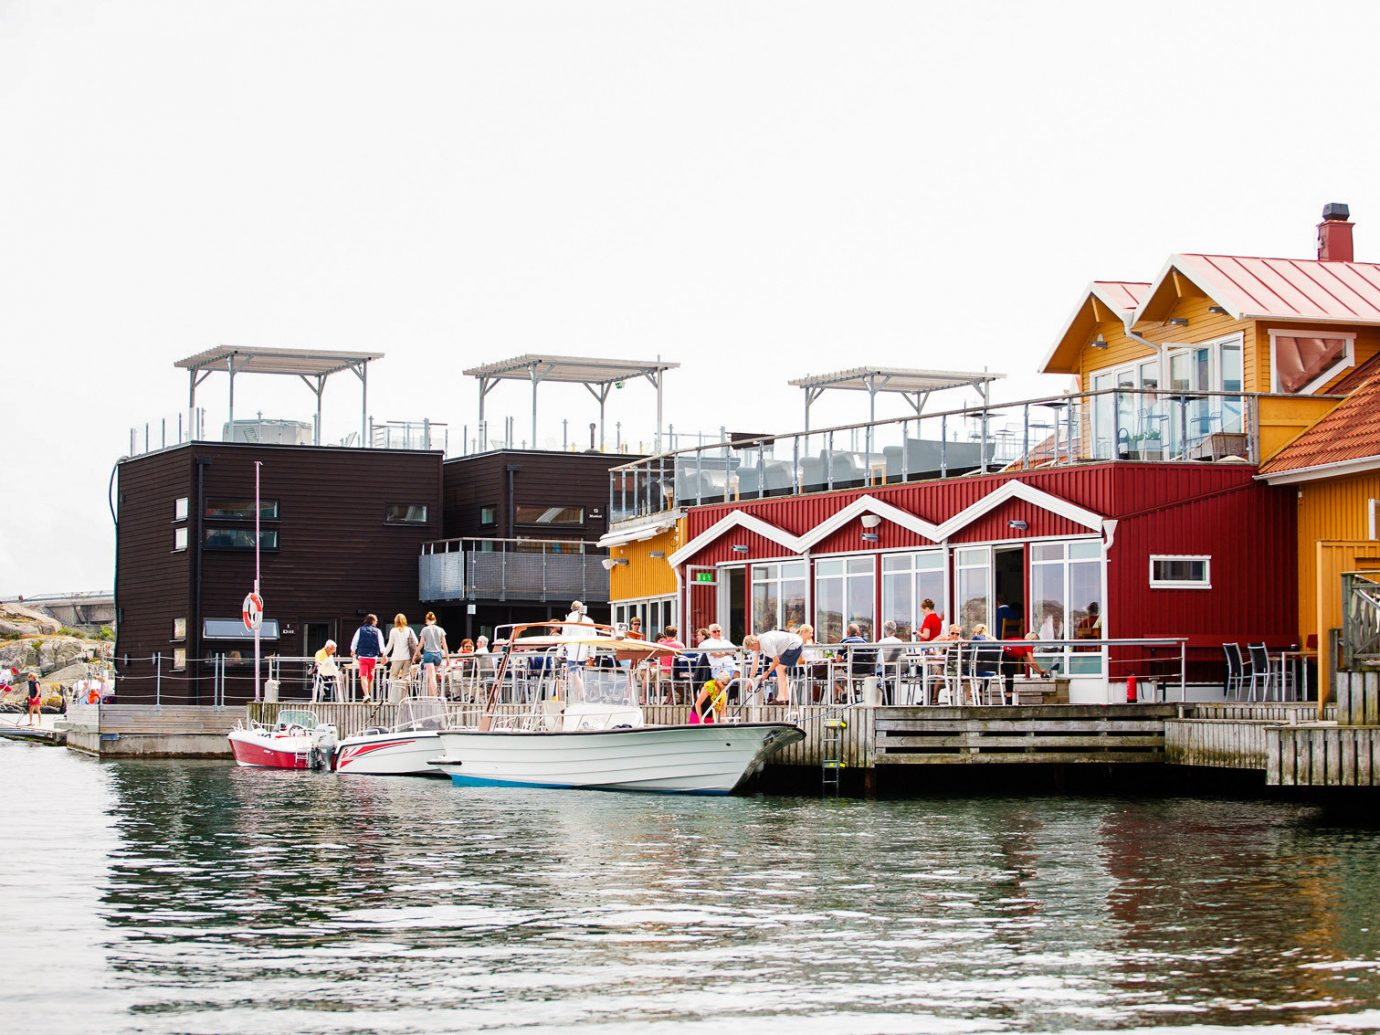 Boutique Hotels Sweden waterway water transportation water marina Boat home dock real estate Harbor boating house ferry recreation channel